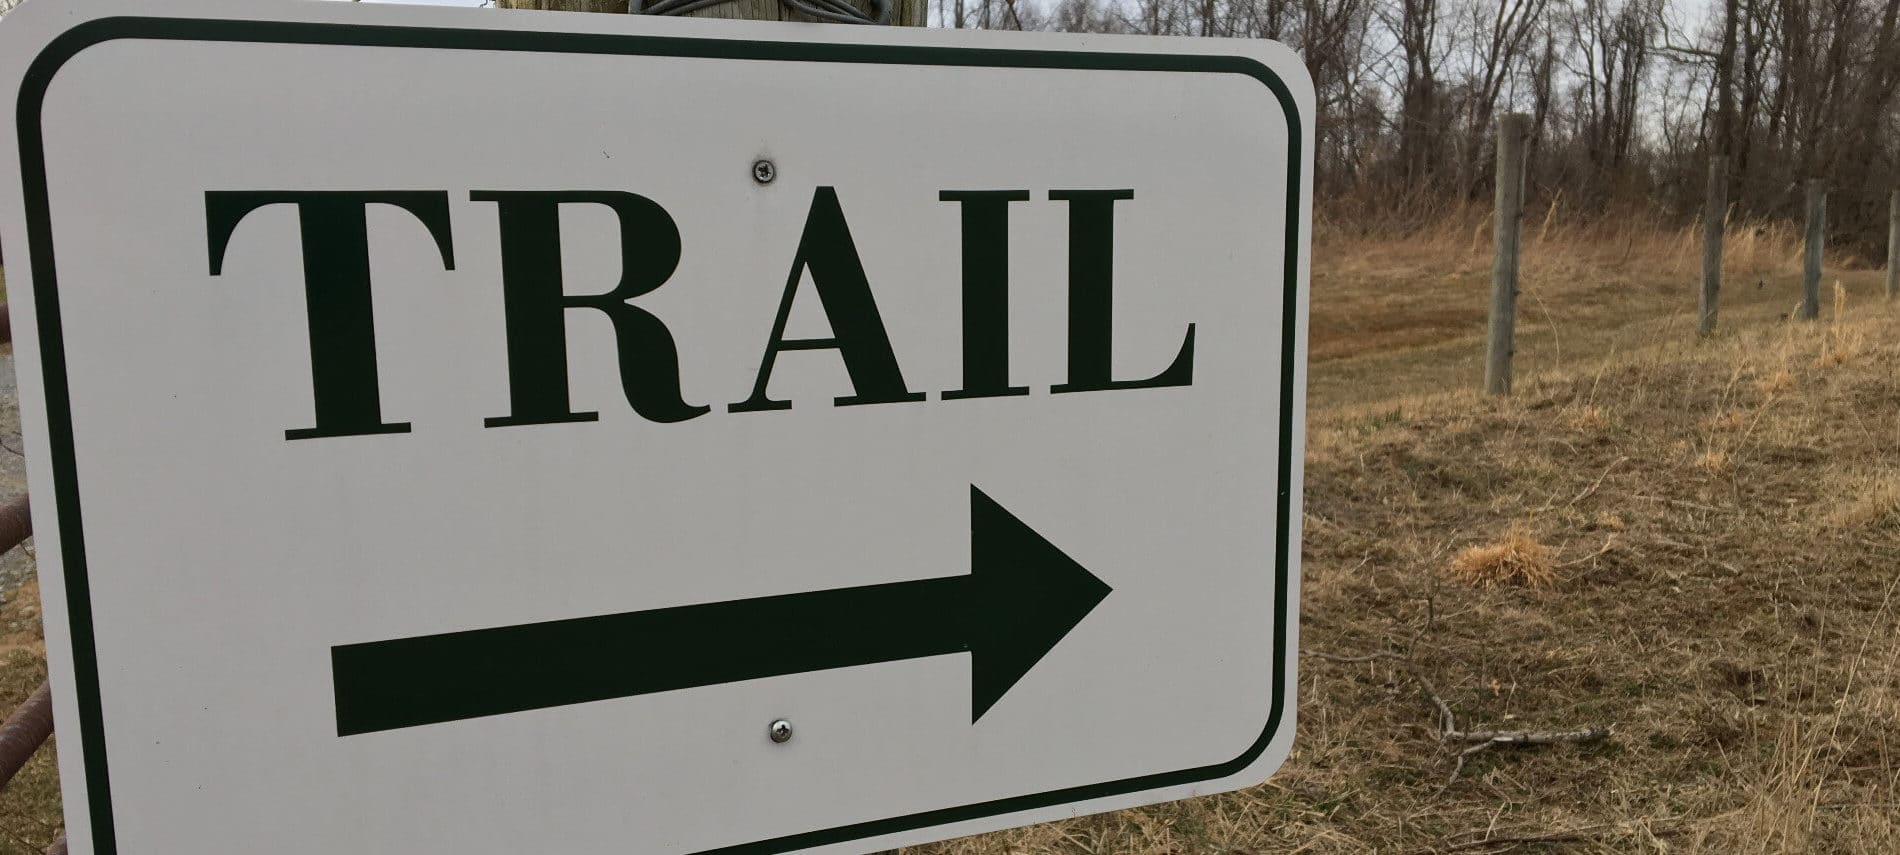 Metal sign on a post with the word Trail and a black arrow